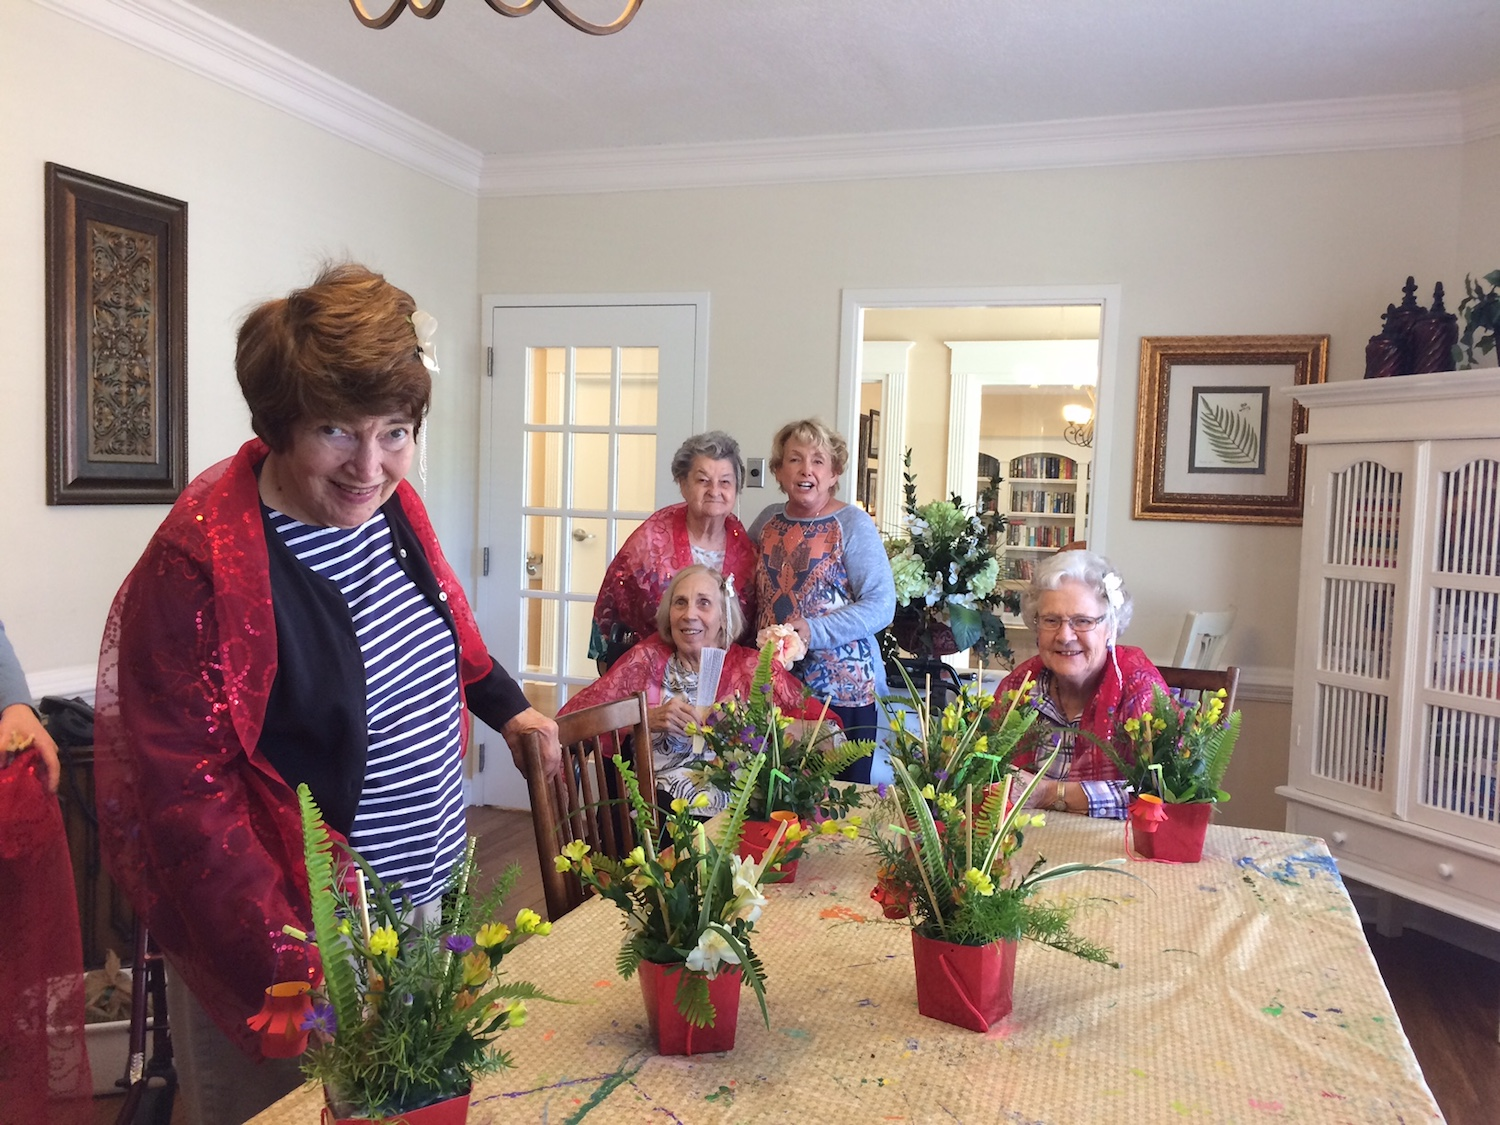 Member Alice Caldwell helps residents prepare centerpieces for the dining room